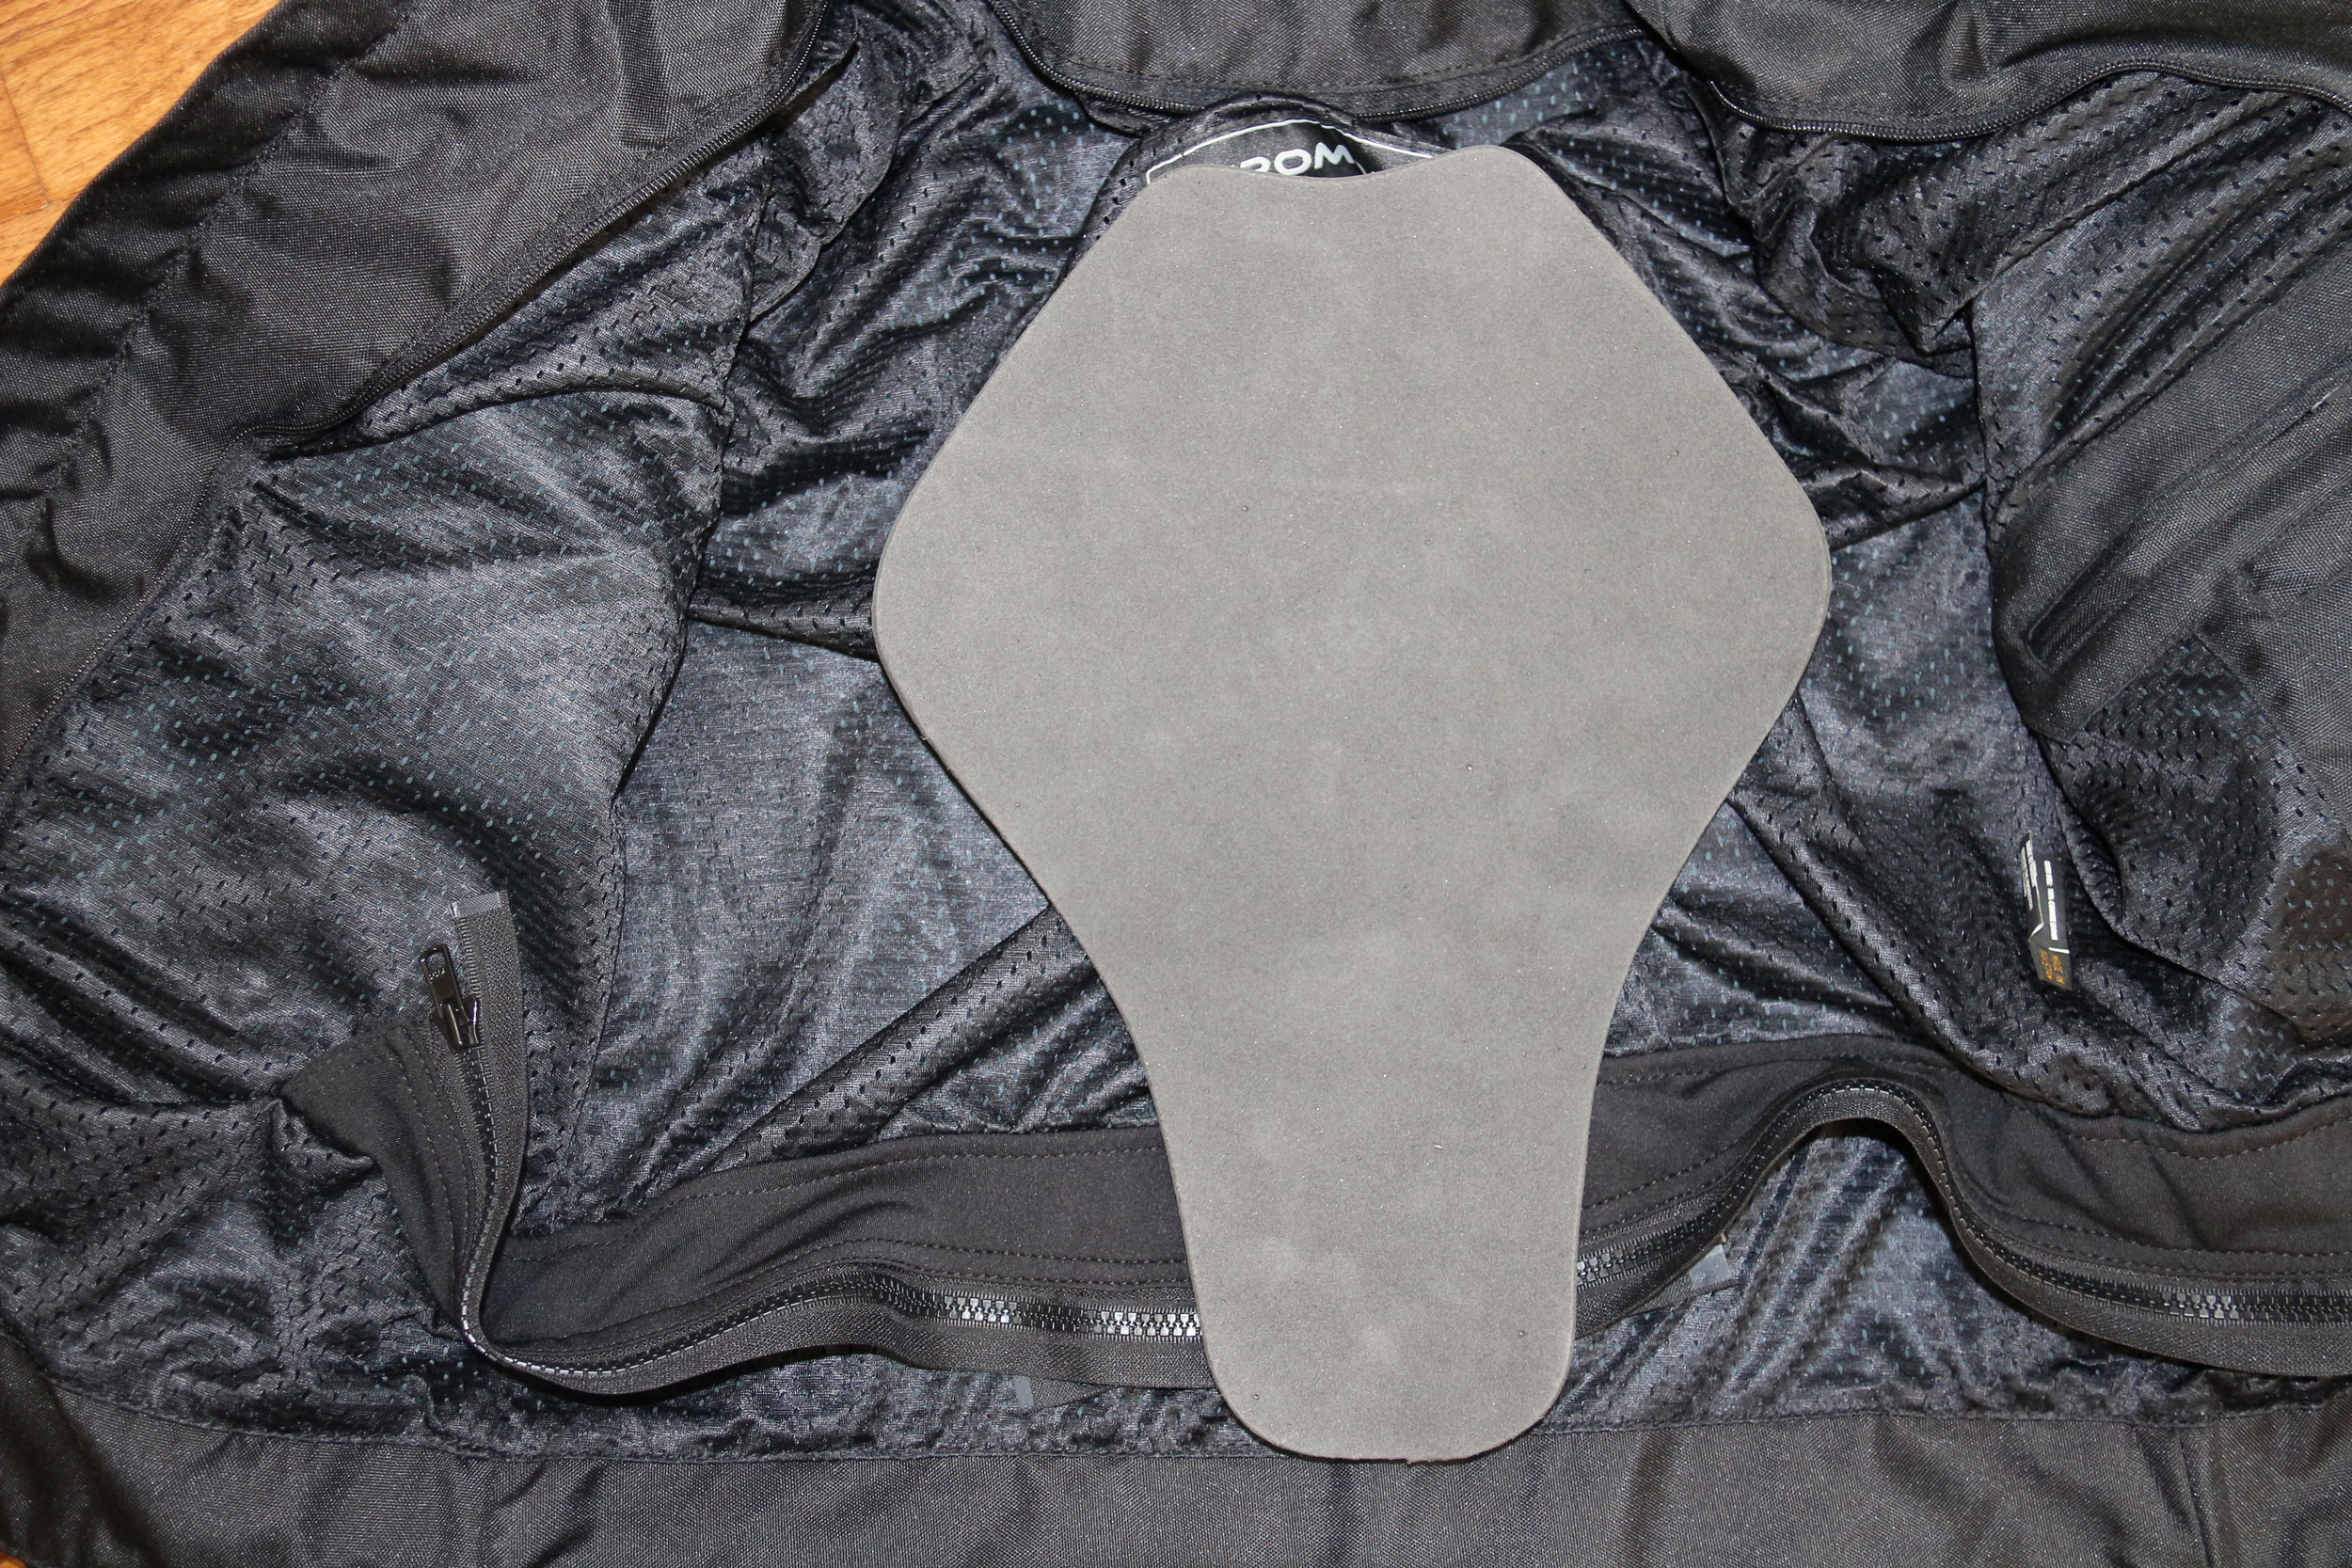 Removable Back Pad